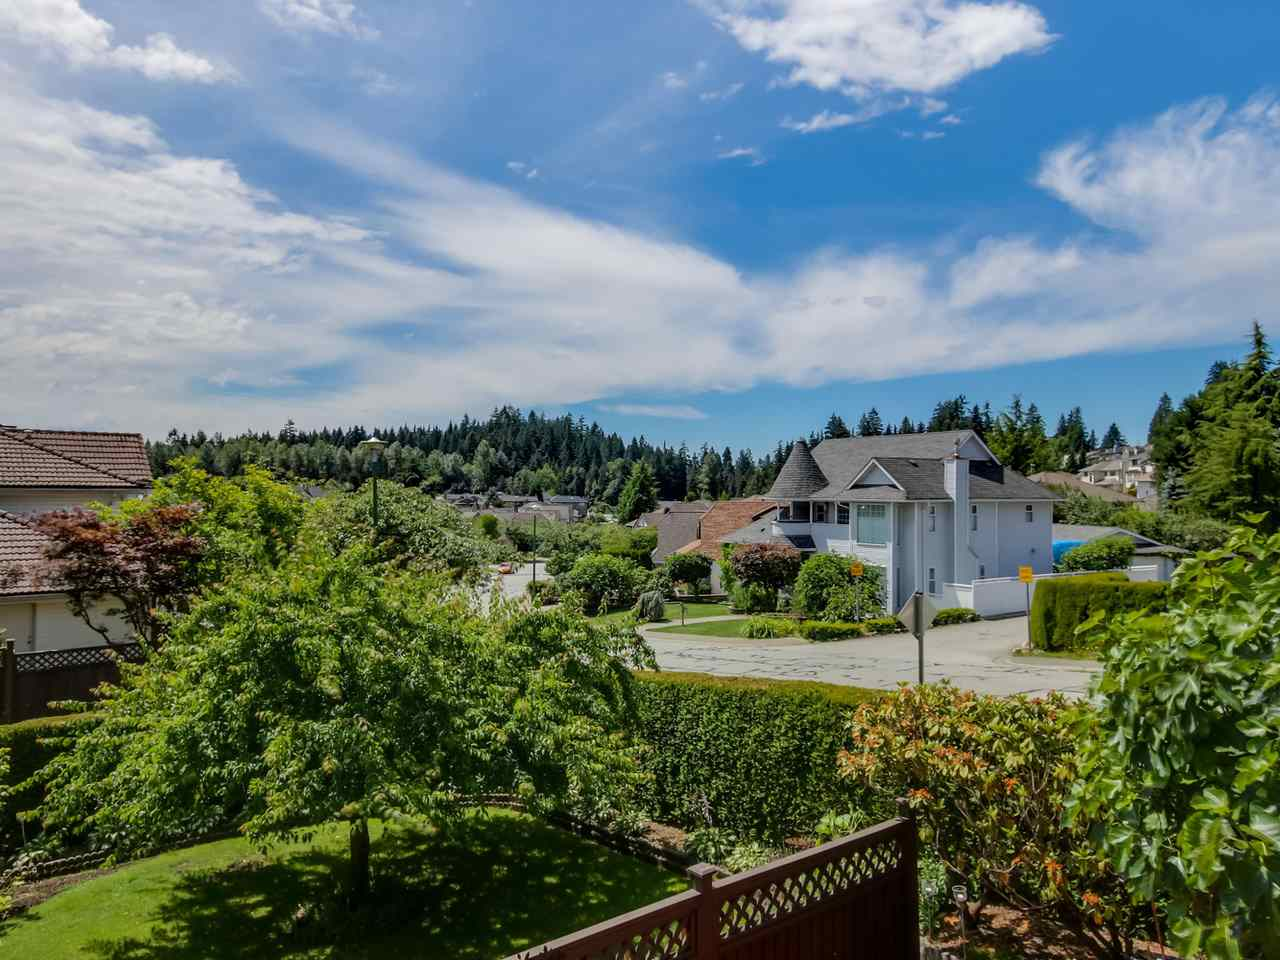 Photo 15: Photos: 757 E 29TH Street in North Vancouver: Tempe House for sale : MLS®# R2083444